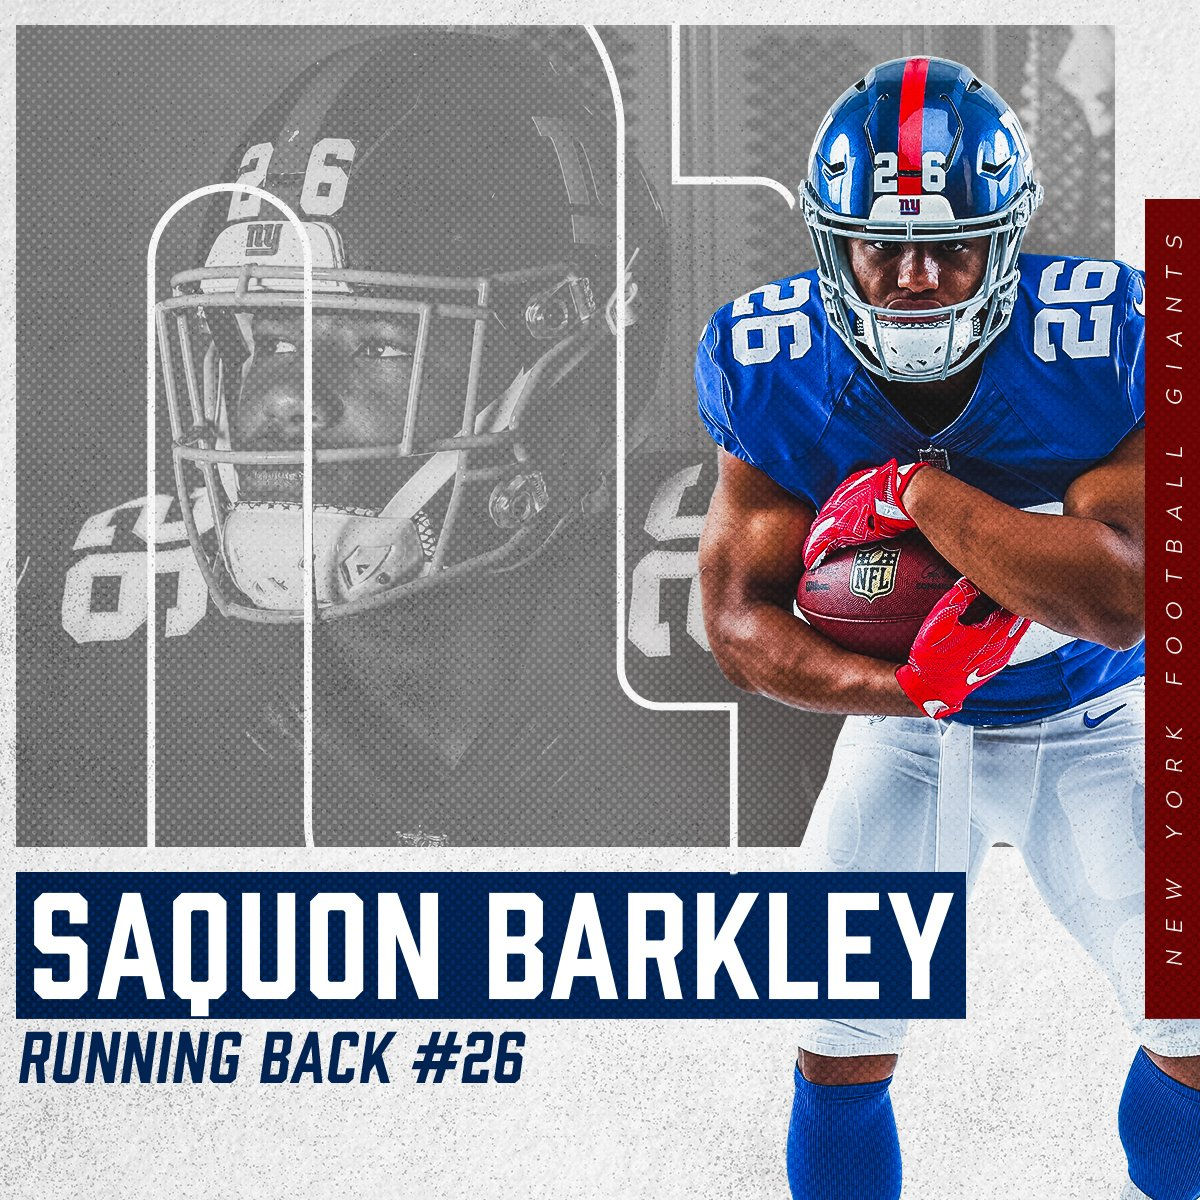 Yeah, this guy can play. 39 yards on @saquon&#39;s first run from scrimmage! #CLEvsNYG <br>http://pic.twitter.com/Ssl9whZkDY